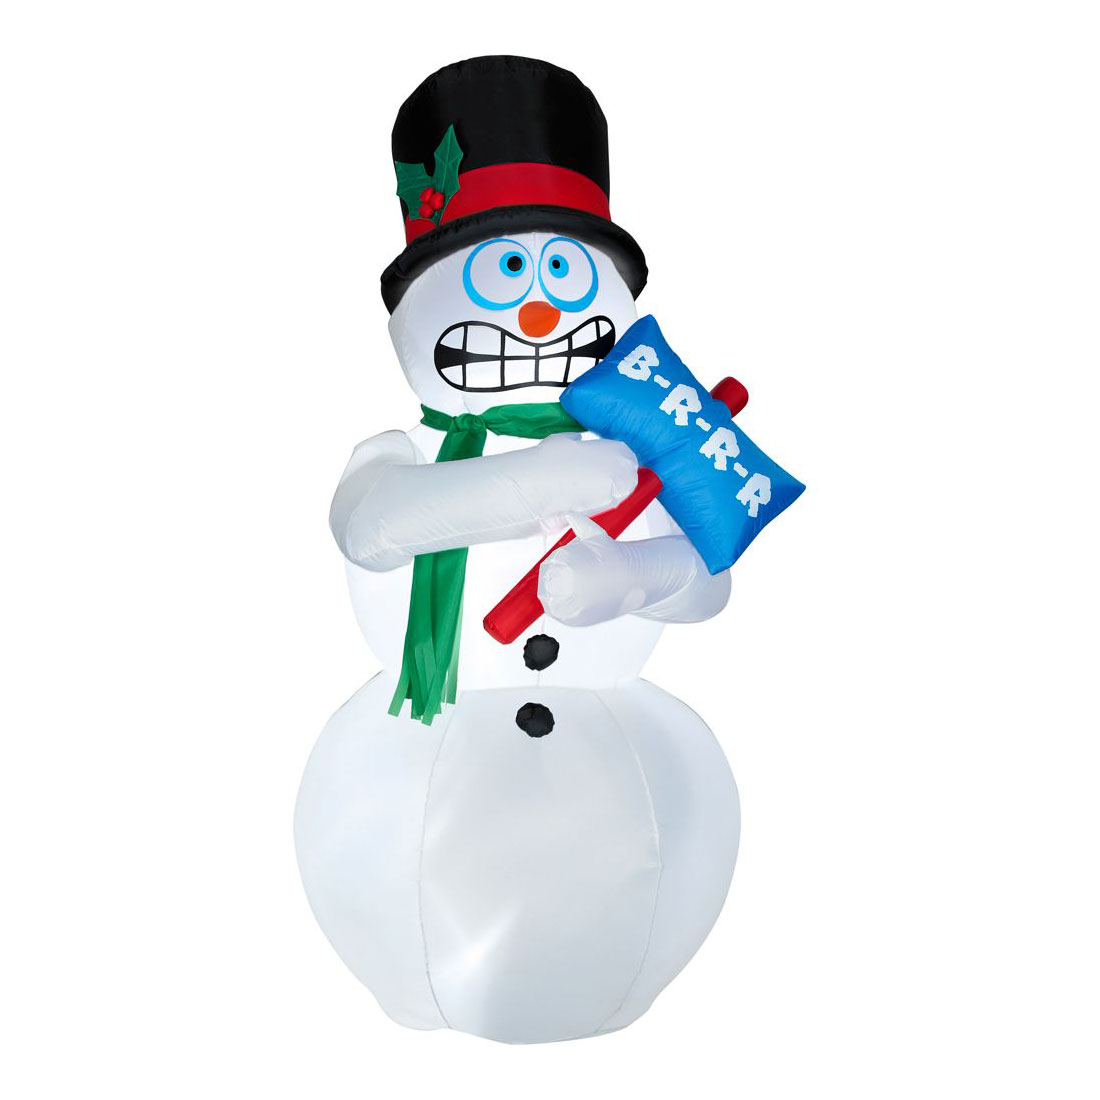 ... snowman 1000 x 1000 52 kb jpeg animated shivering snowman inflatable